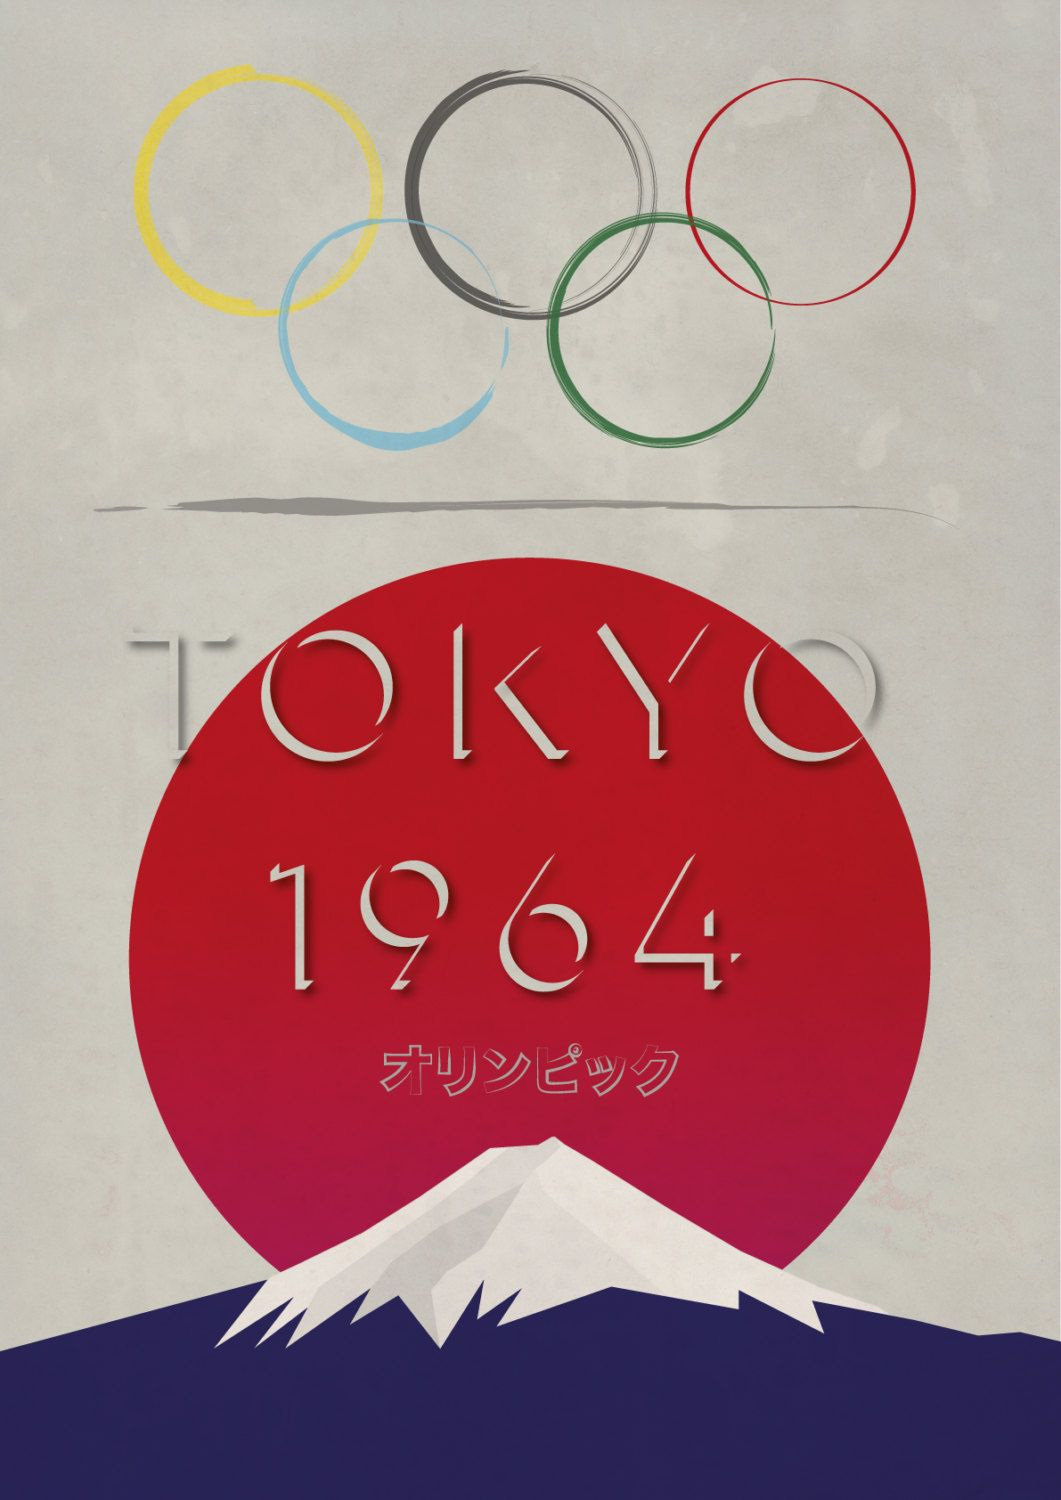 Tokyo Olympics 1964 Retro Styled Poster Vintage Look Mount Fuji Recreation Not Original Tokyo Olympics Vintage Posters Sport Poster